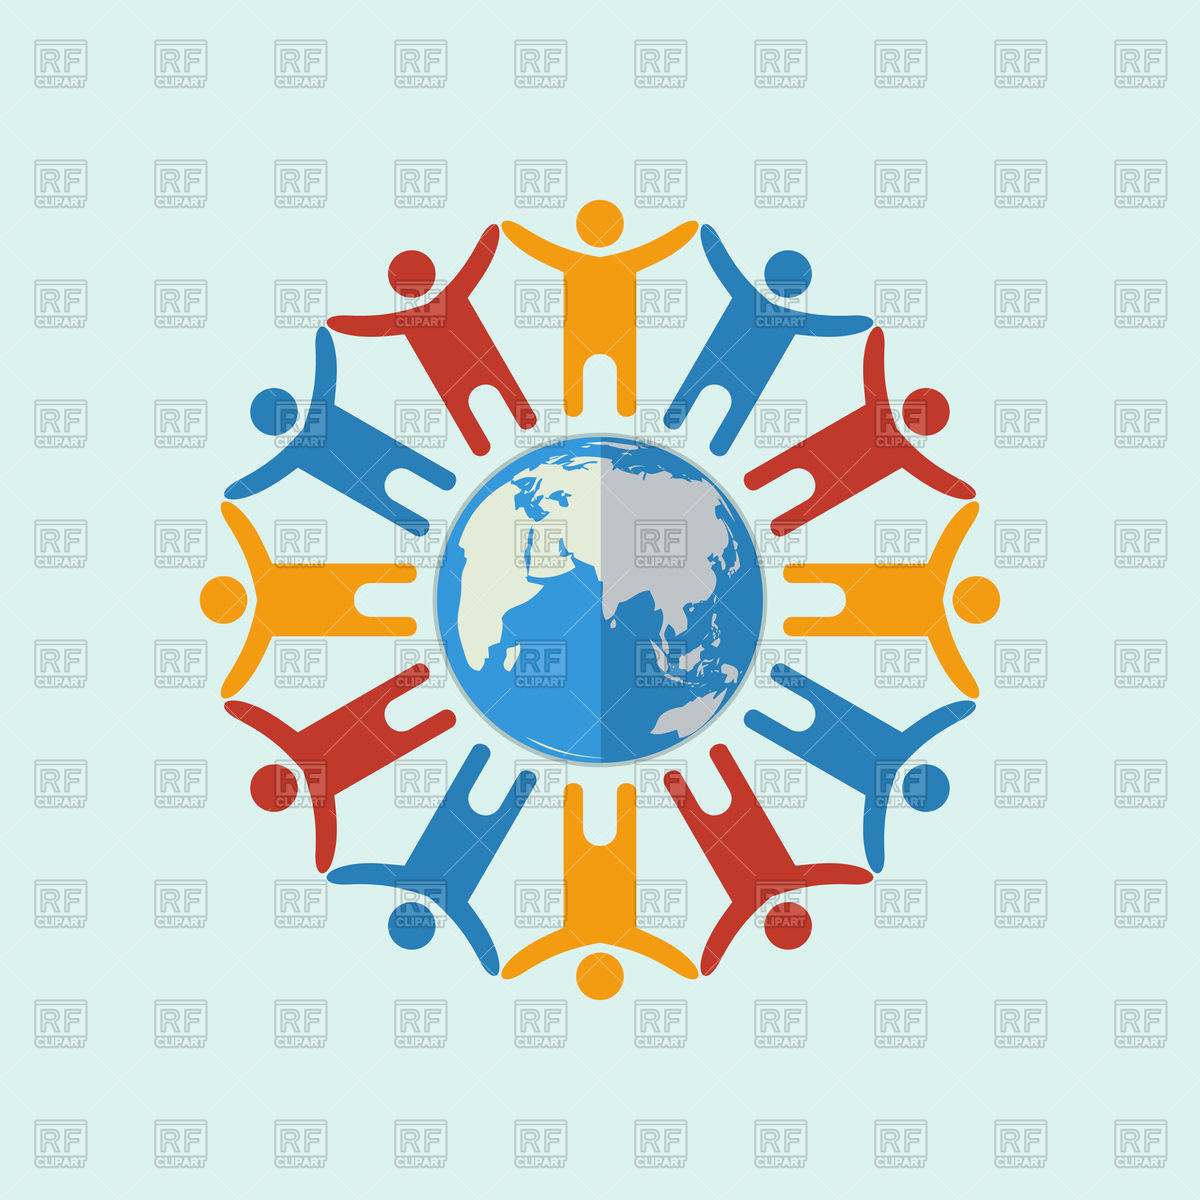 People around the world icon Vector Image #79170.